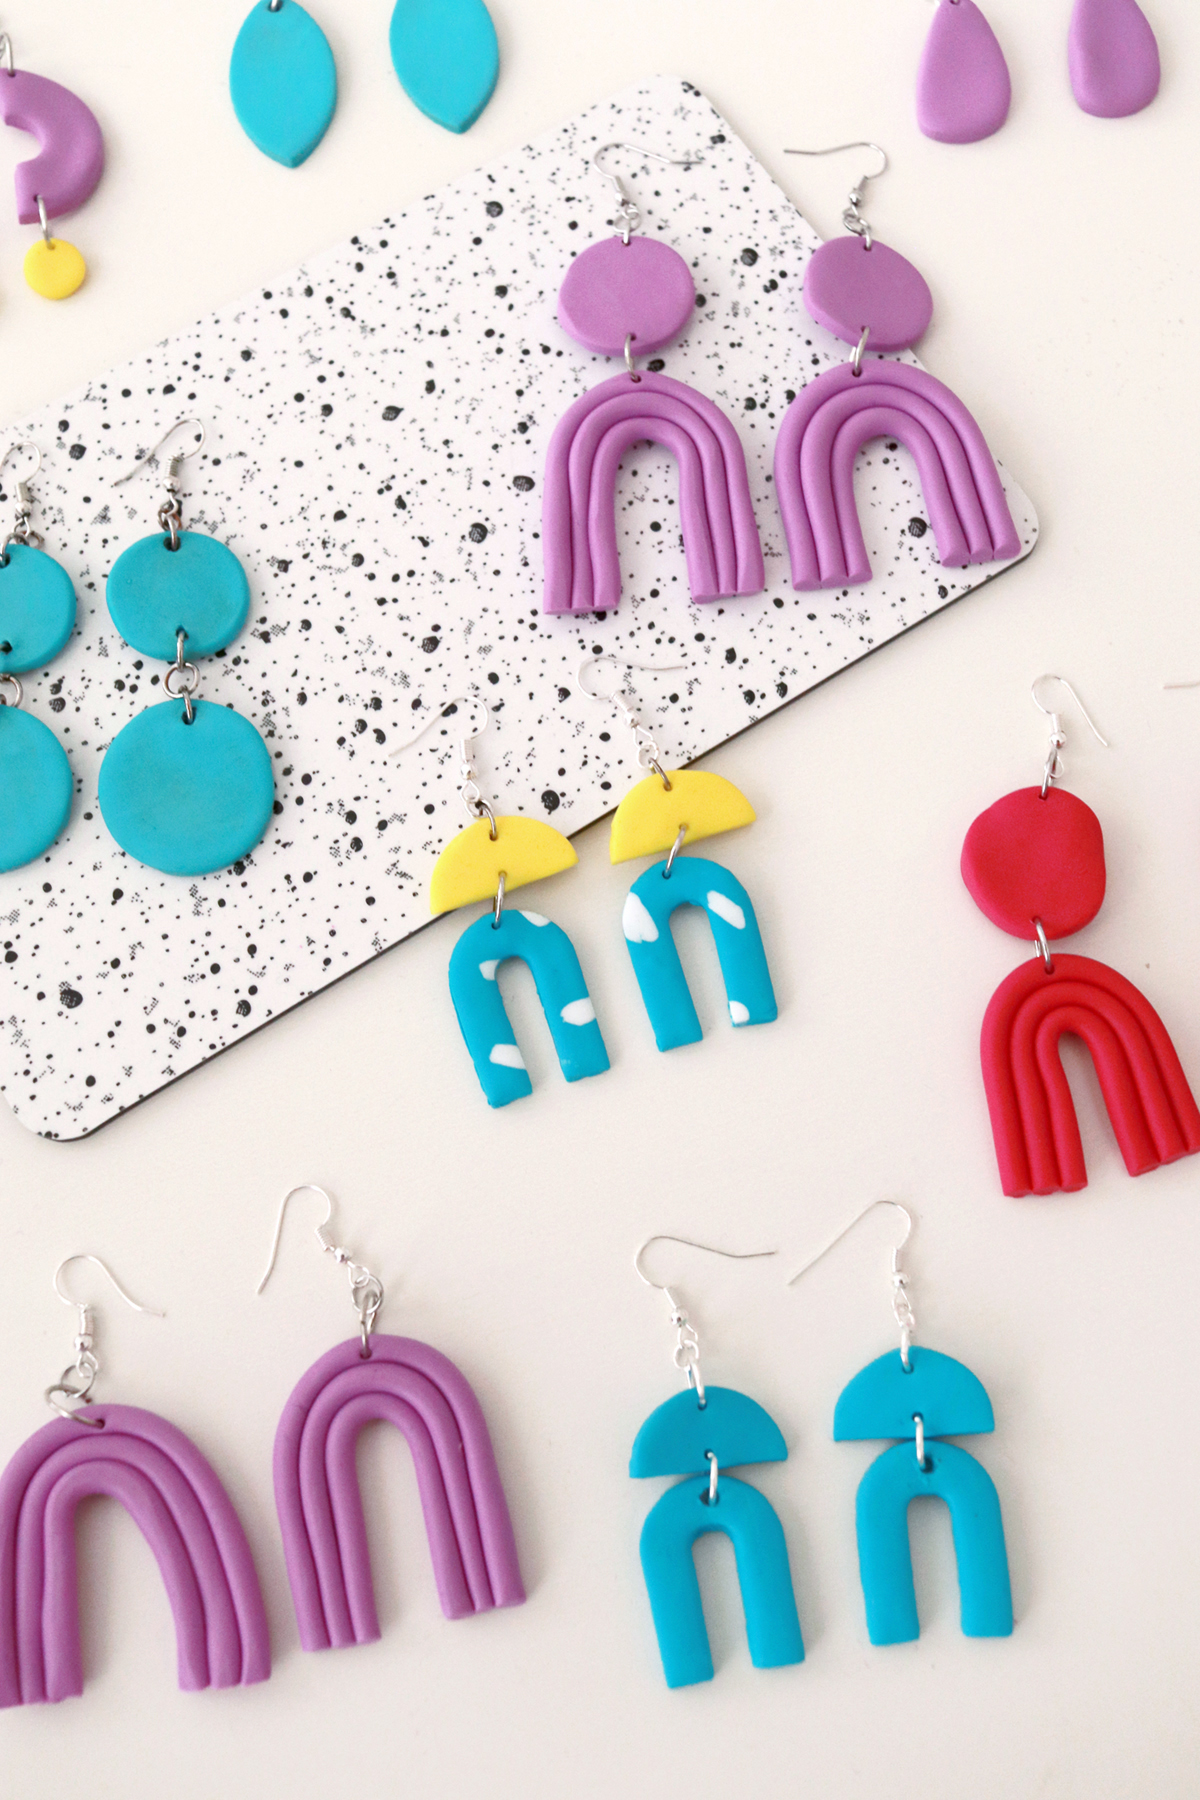 Luloveshandmade-DIY-Jewelry-Schmuck-FIMO-Polymer-Clay-Earrings-1-1